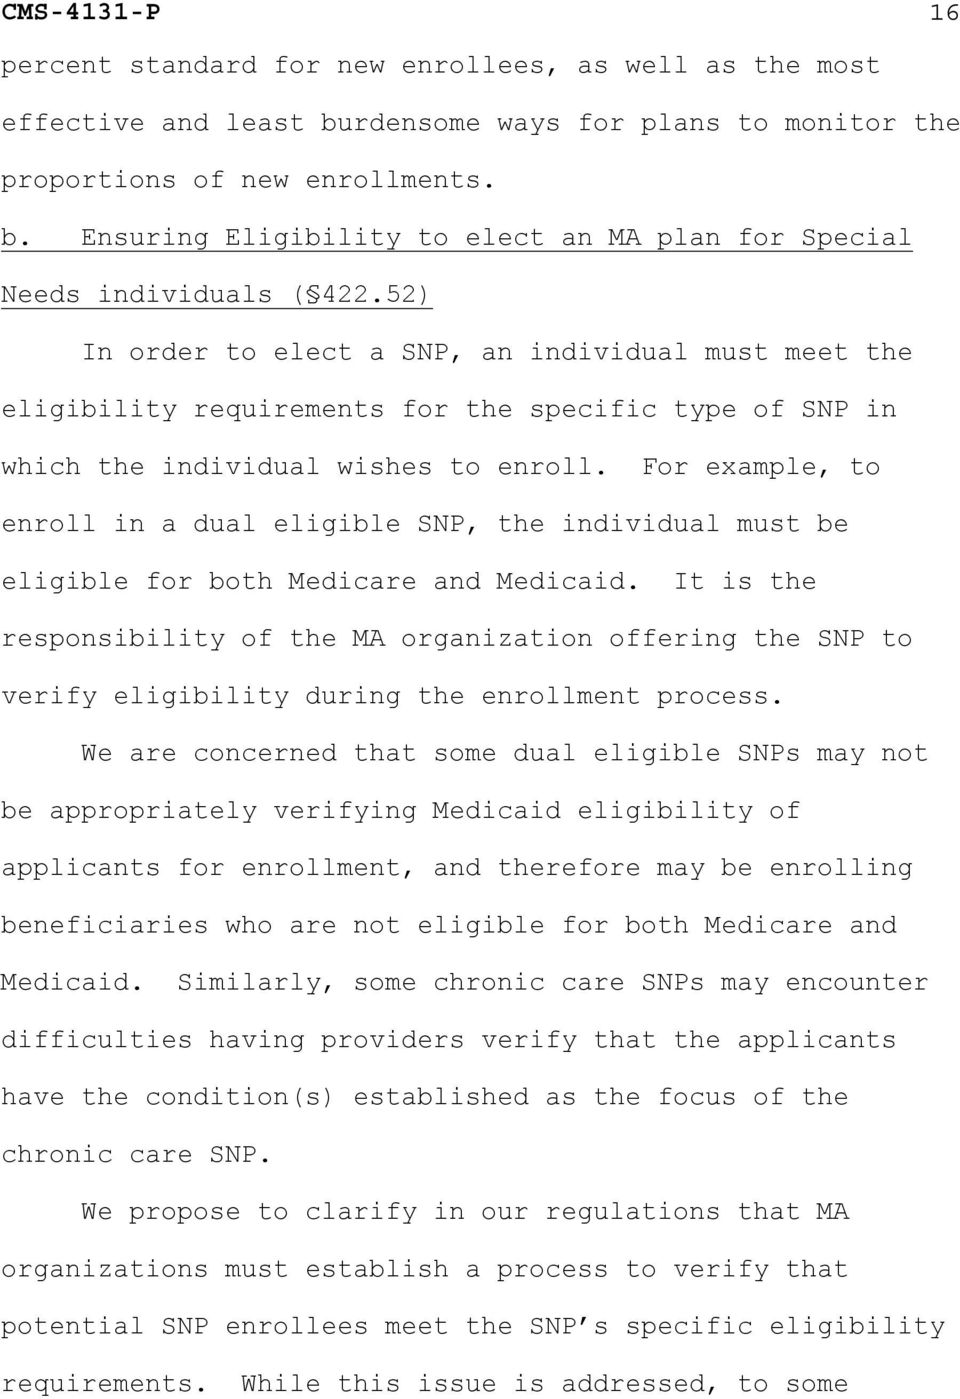 For example, to enroll in a dual eligible SNP, the individual must be eligible for both Medicare and Medicaid.